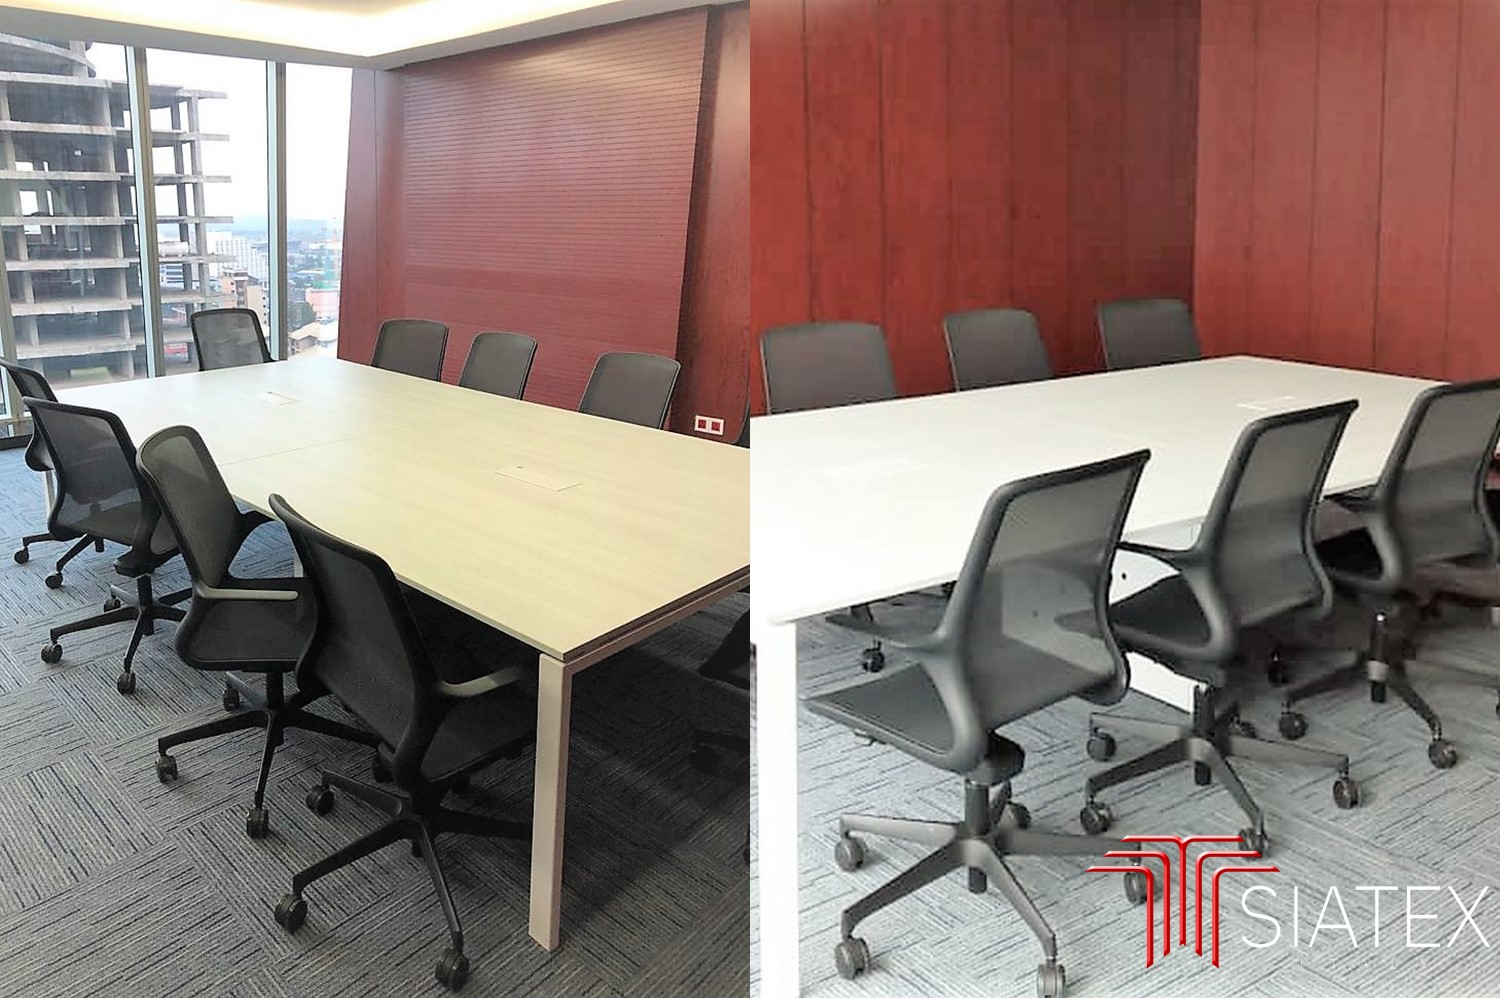 8.office furniture project_meeting table